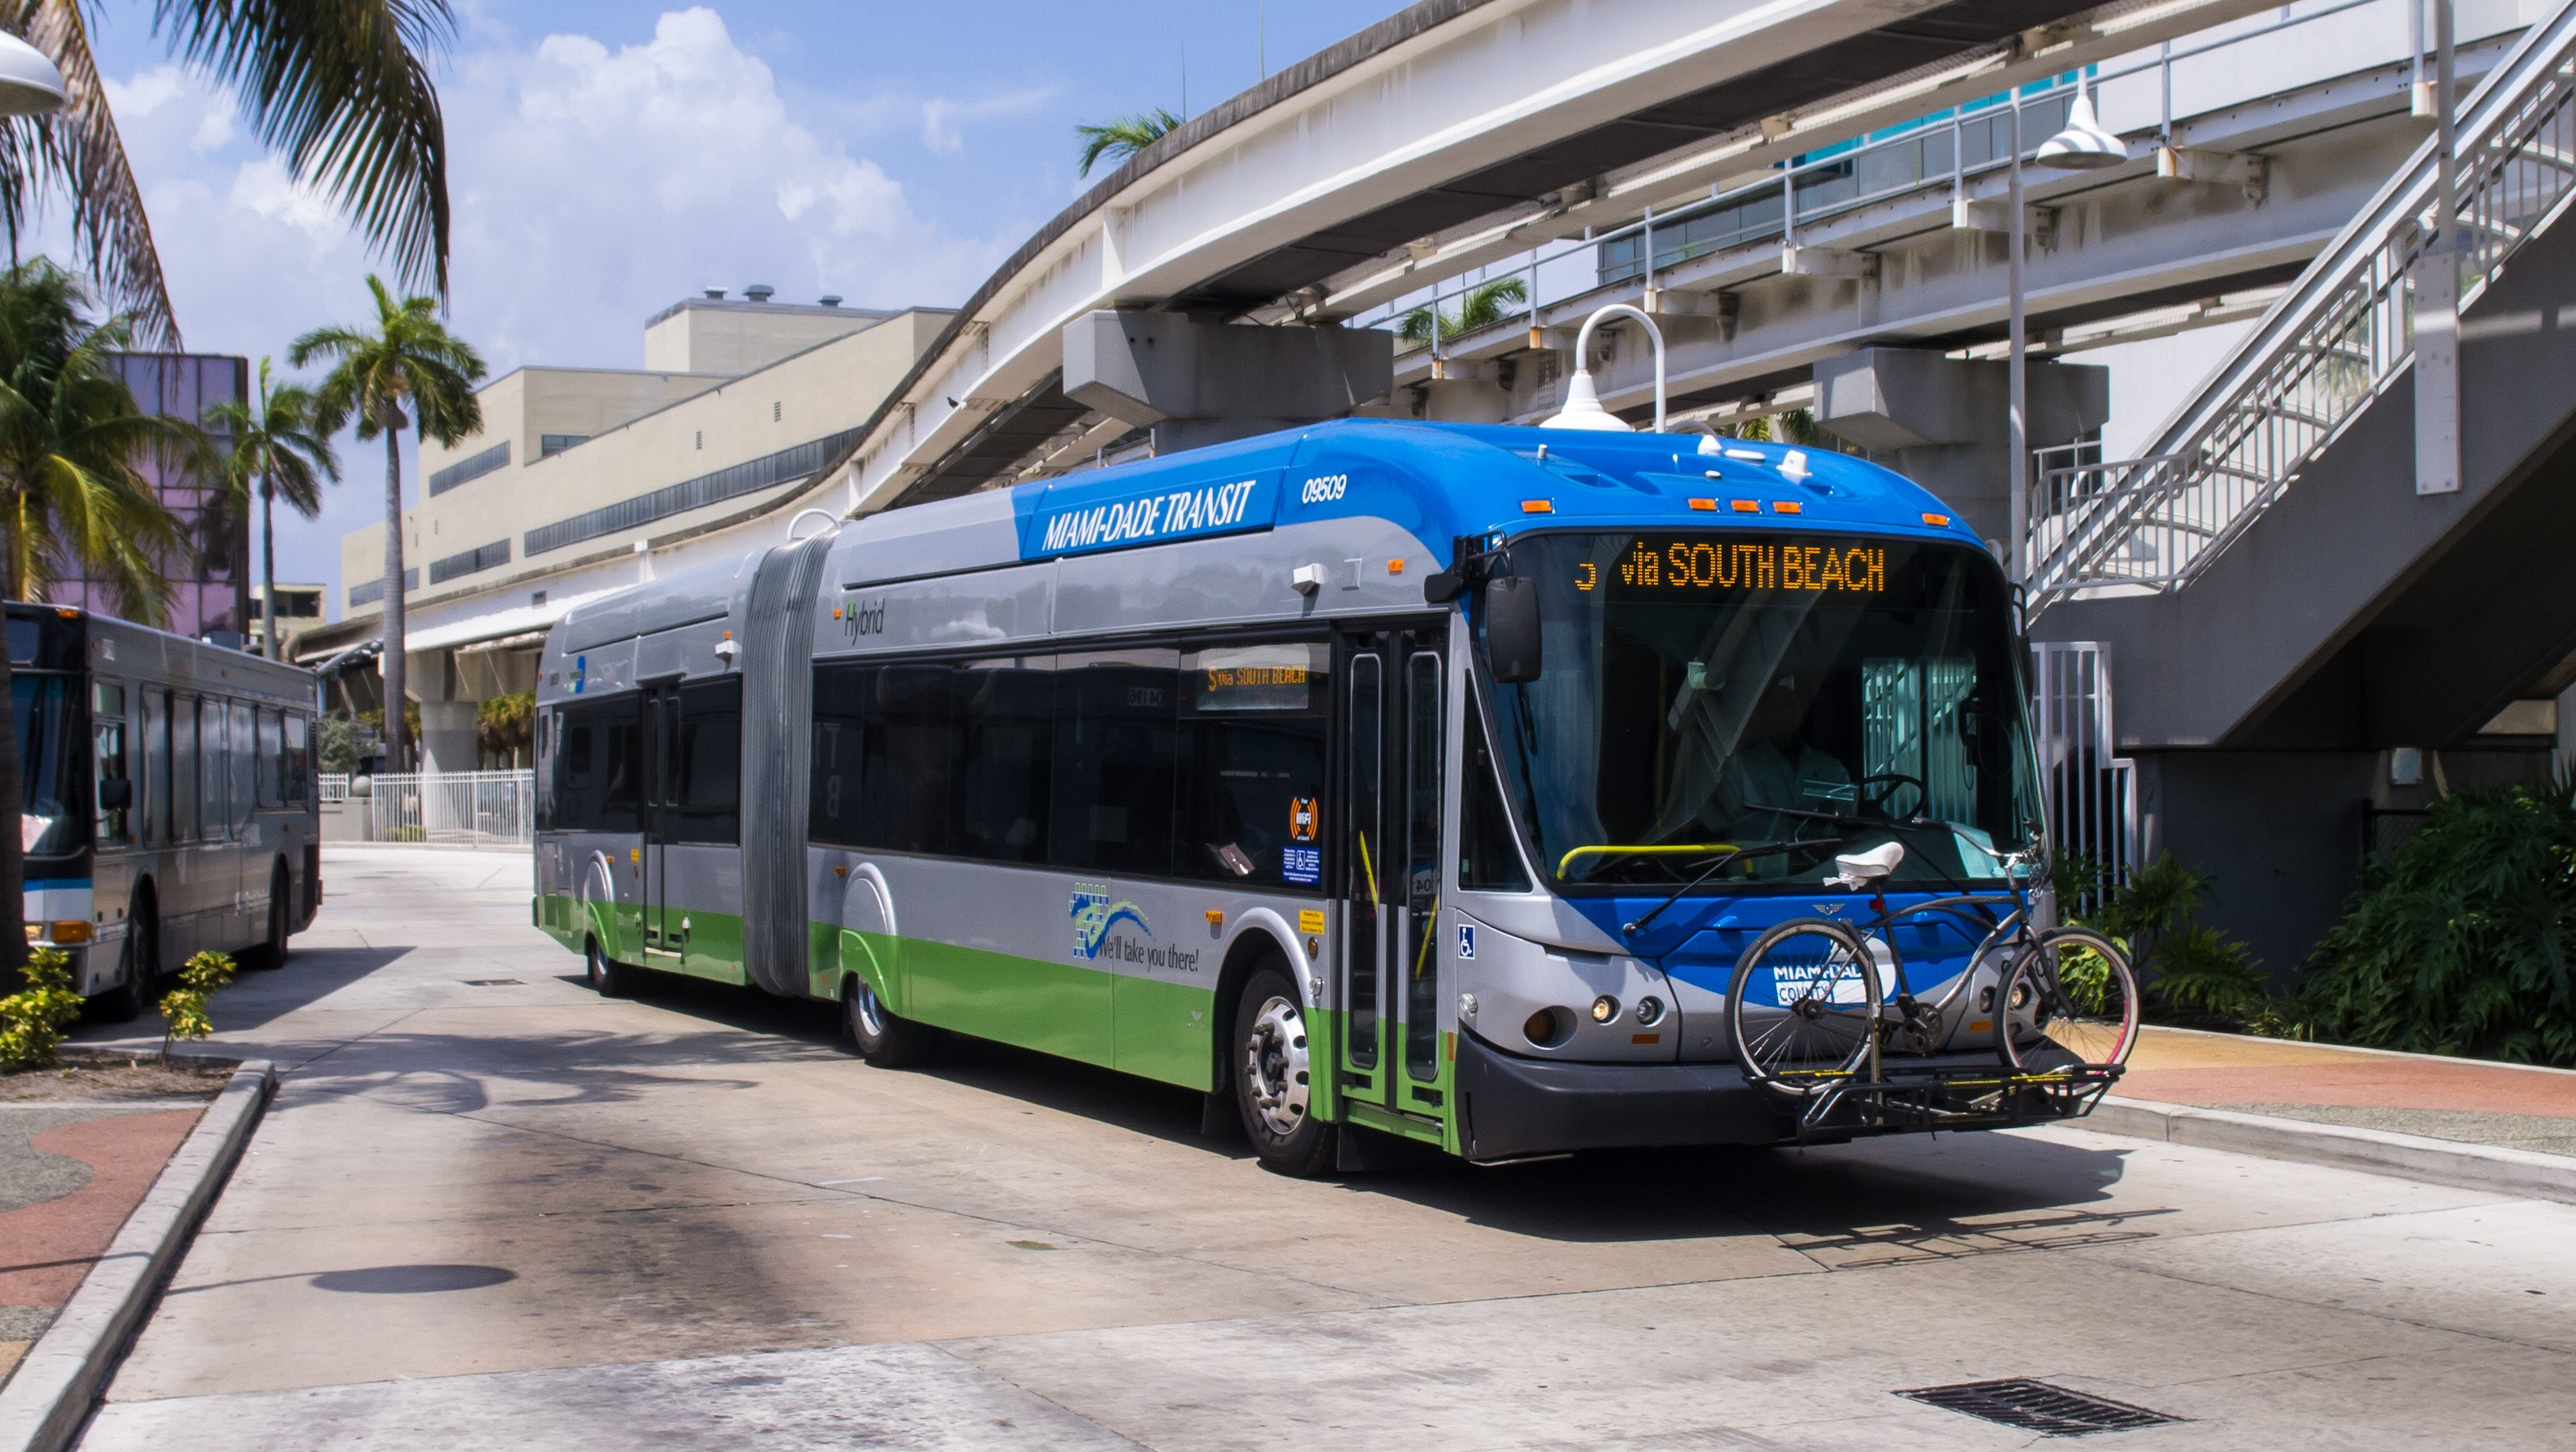 Miami-Dade Transit Union Worries About Coronavirus Threat